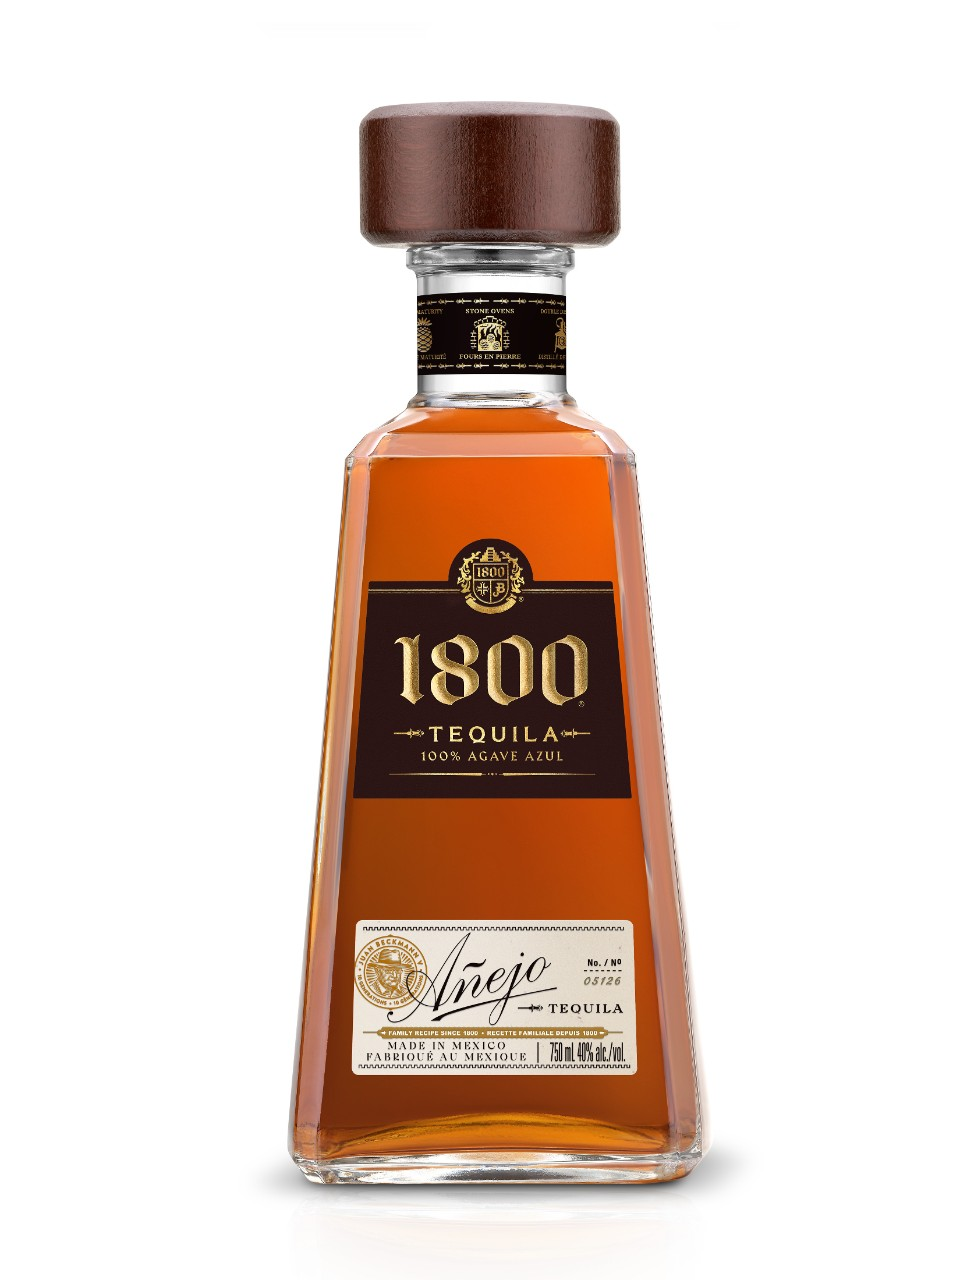 1800 Anejo Tequila from LCBO